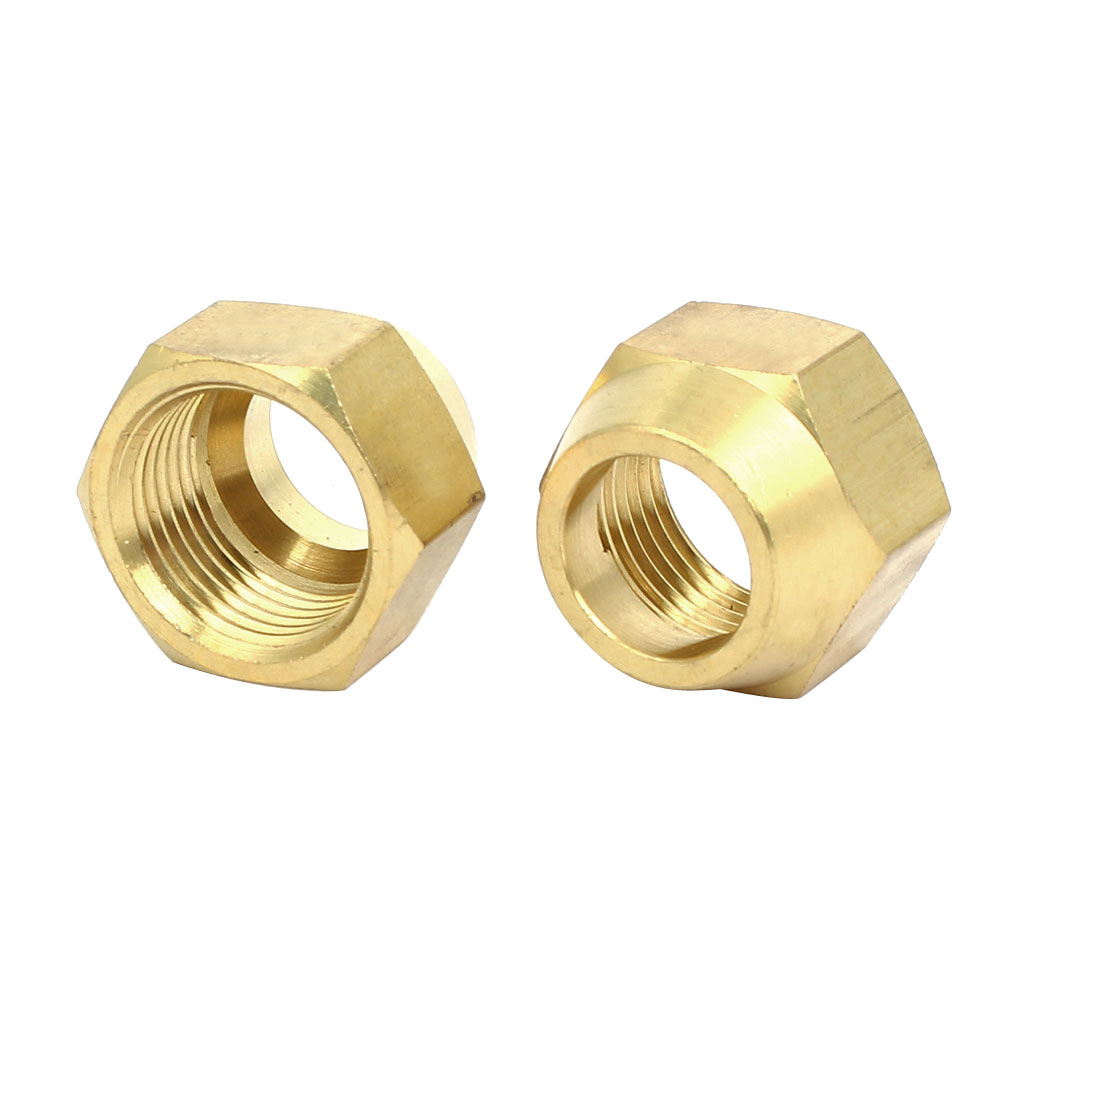 5/8BSP Brass Flare Nuts Air Conditioner Parts Fittings 2pcs for 16mm Dia Pipe